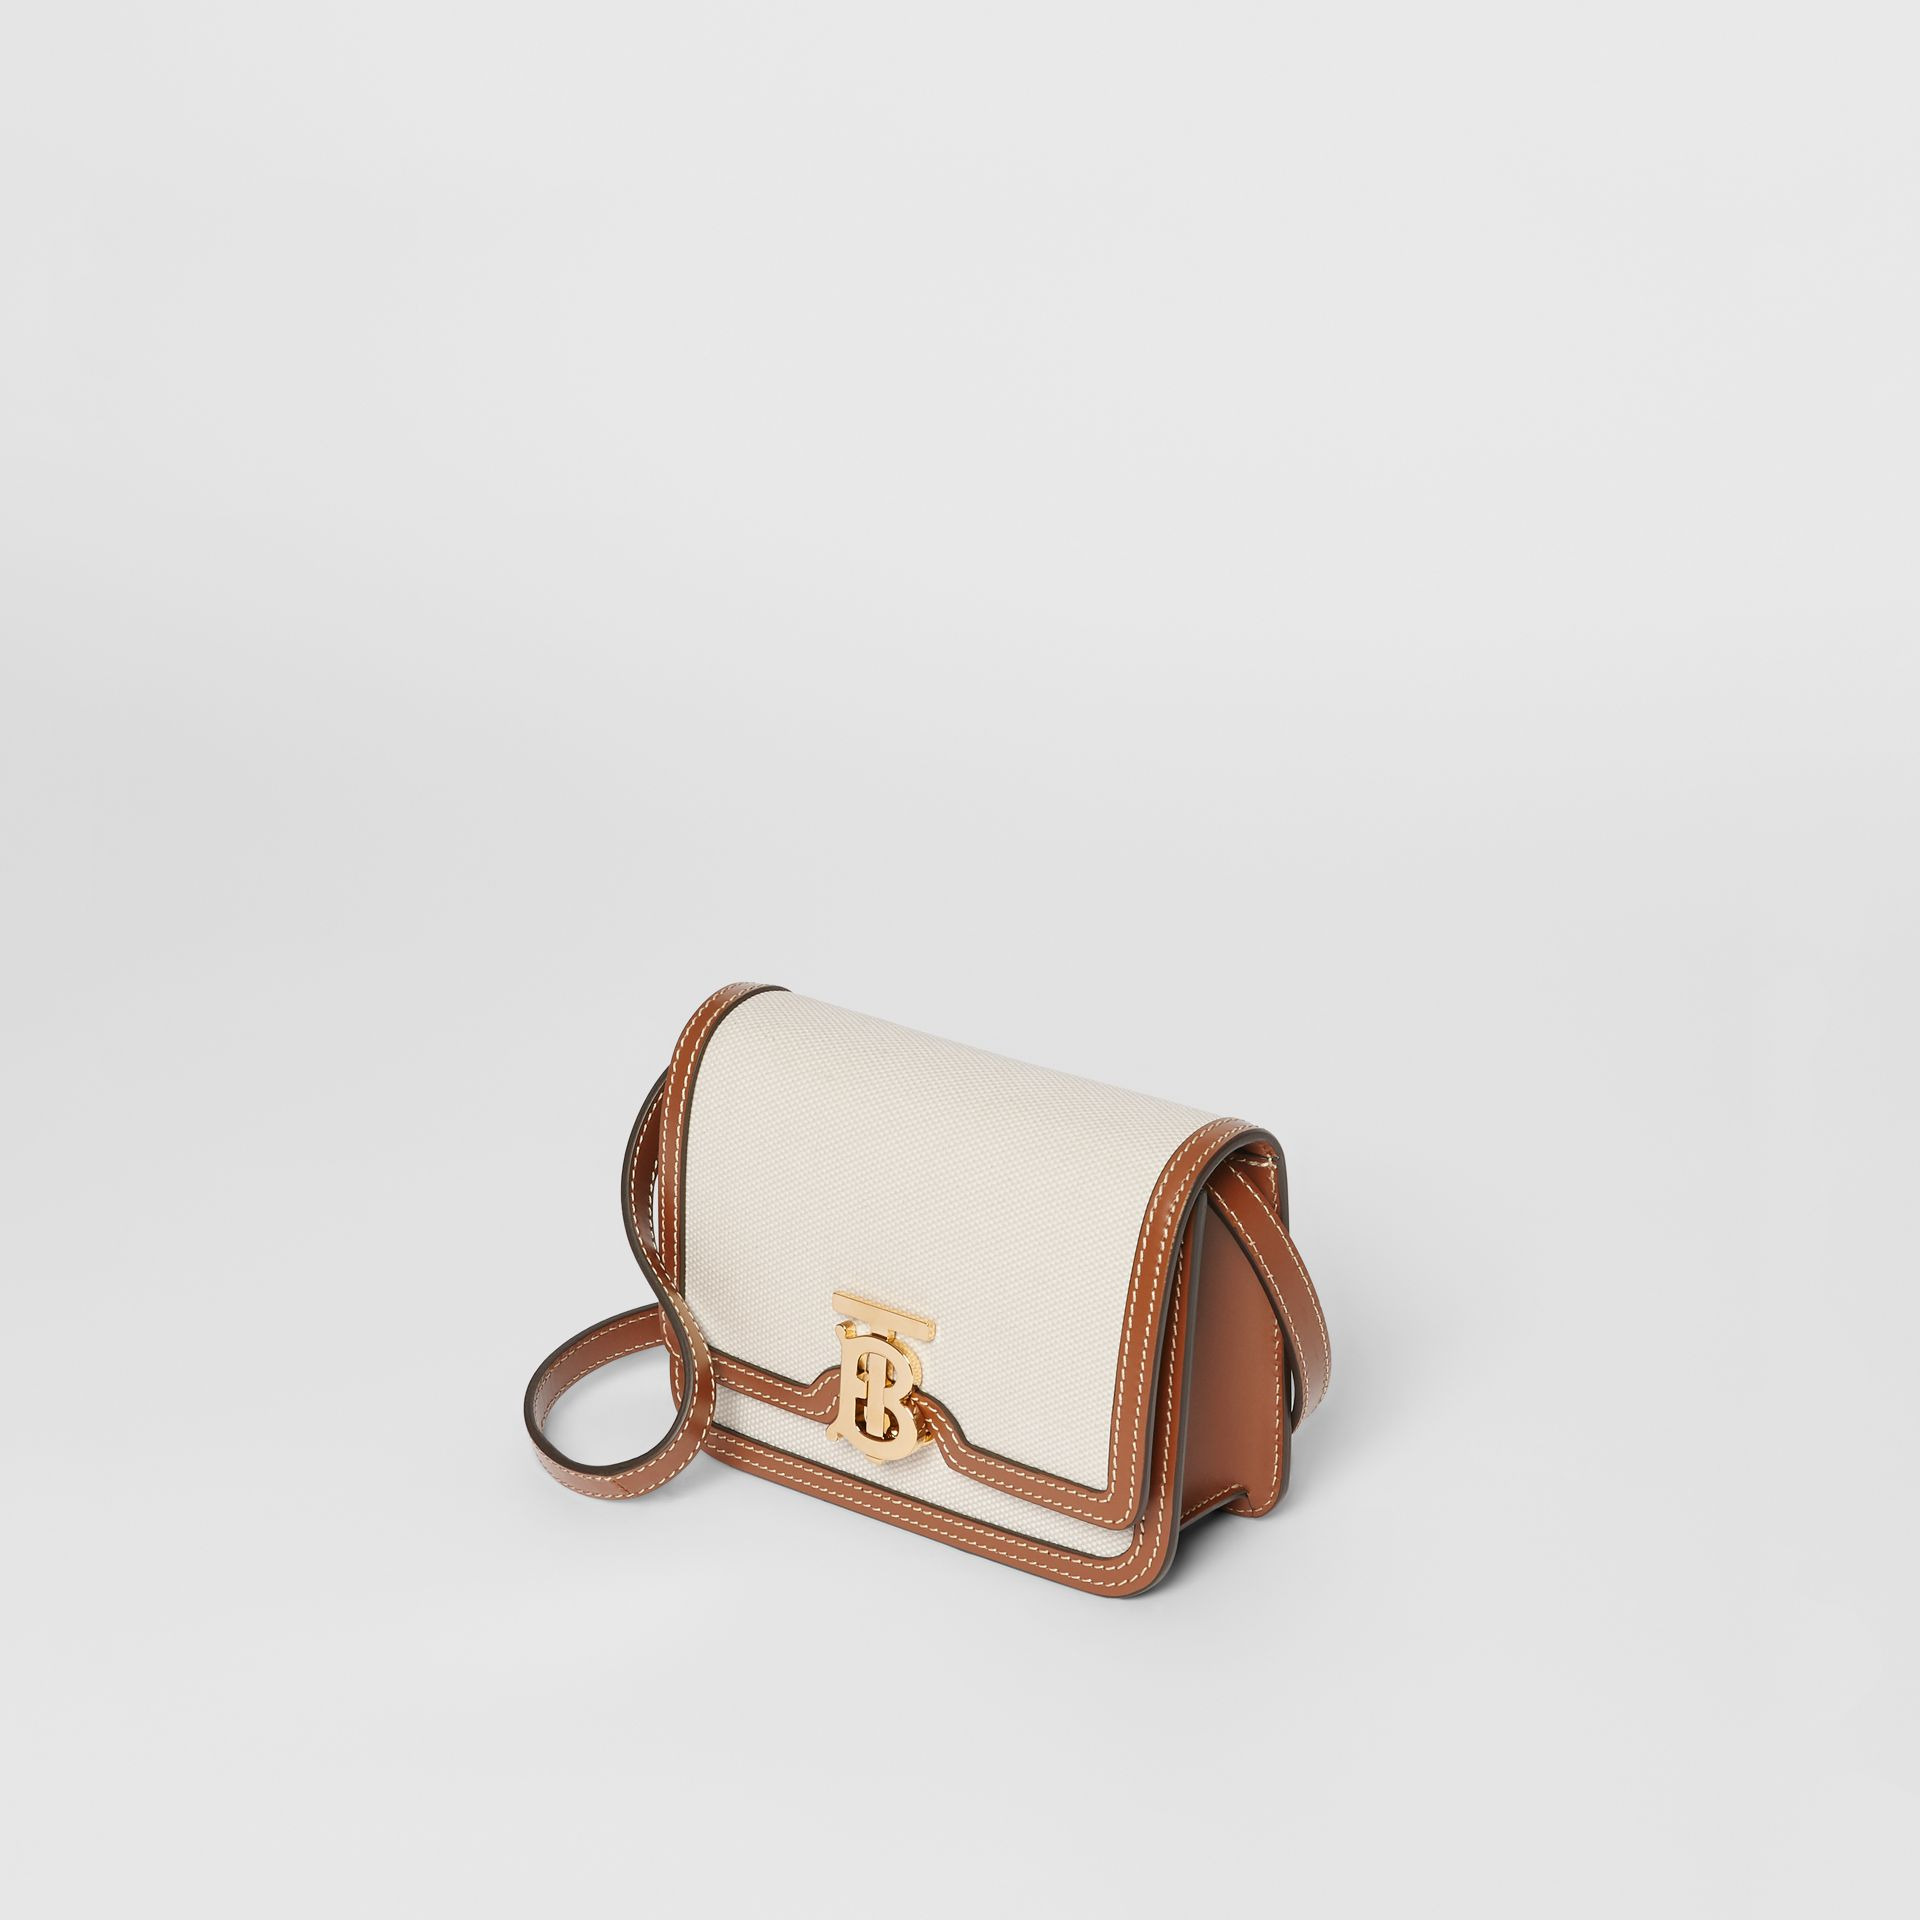 Mini Two-tone Canvas and Leather TB Bag in Natural/malt Brown - Women | Burberry Hong Kong S.A.R. - gallery image 3